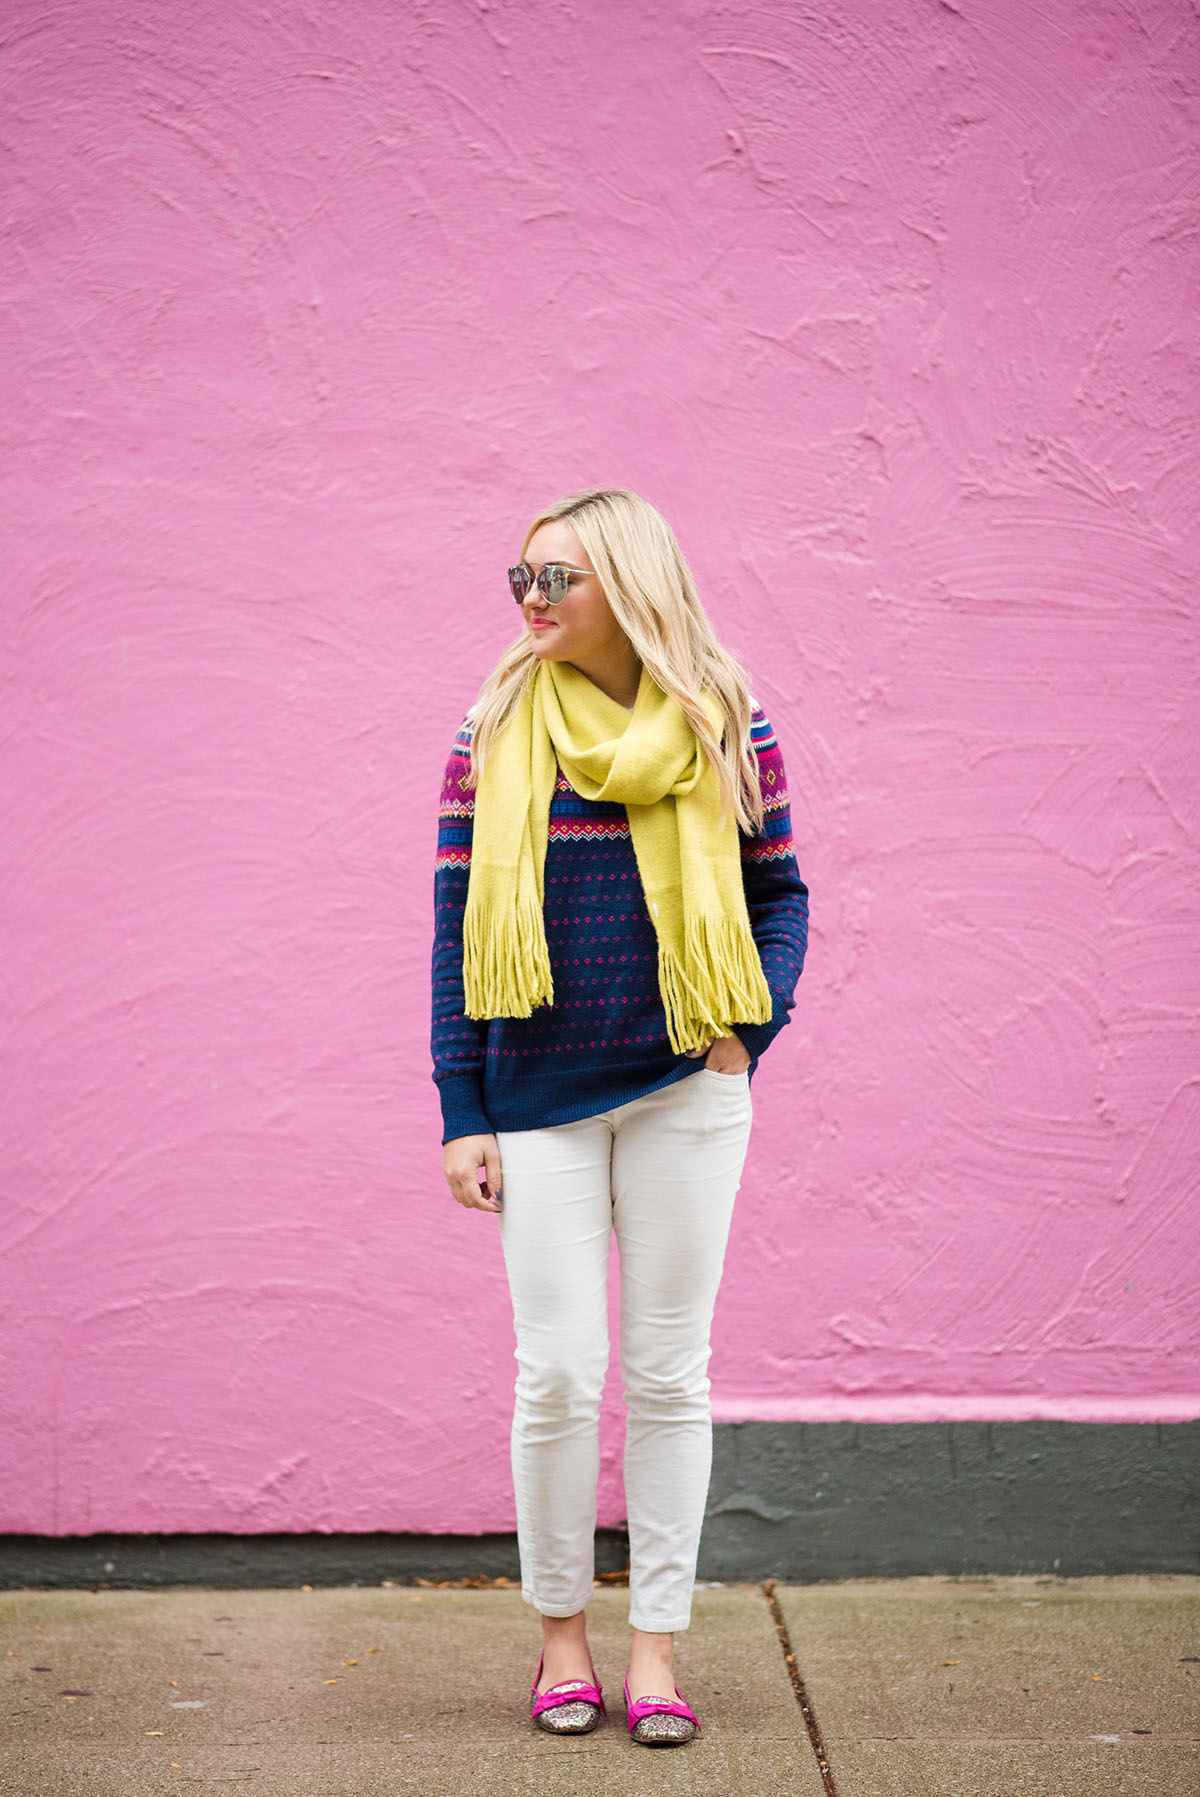 Bows & Sequins styling a pair of winter white corduroy pants with brightly color knits.